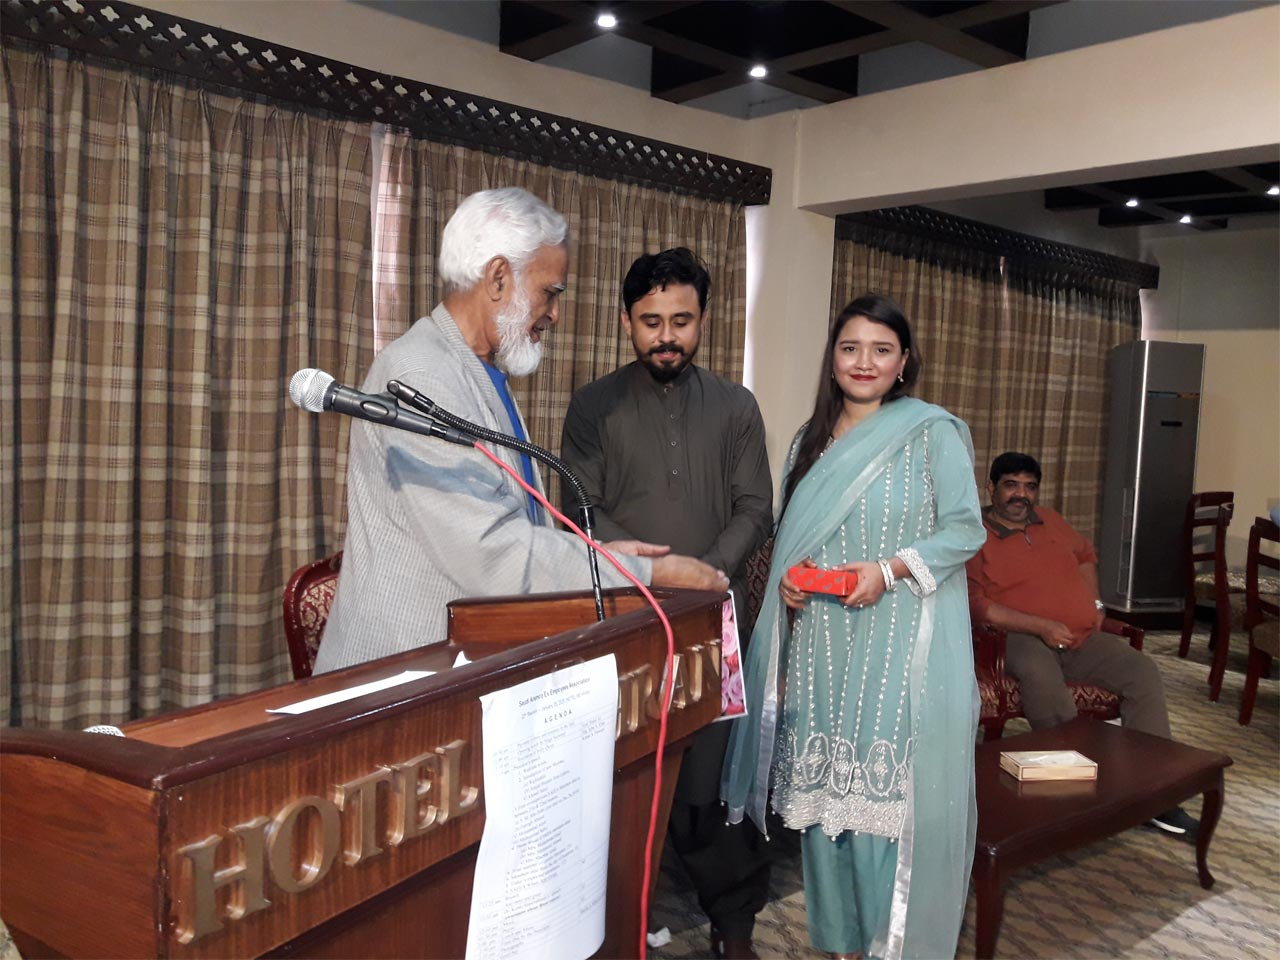 Kamal A. Farooqi is presenting a gift on behalf of SAEEA to Shabeel and Sahrish the newly wed couple